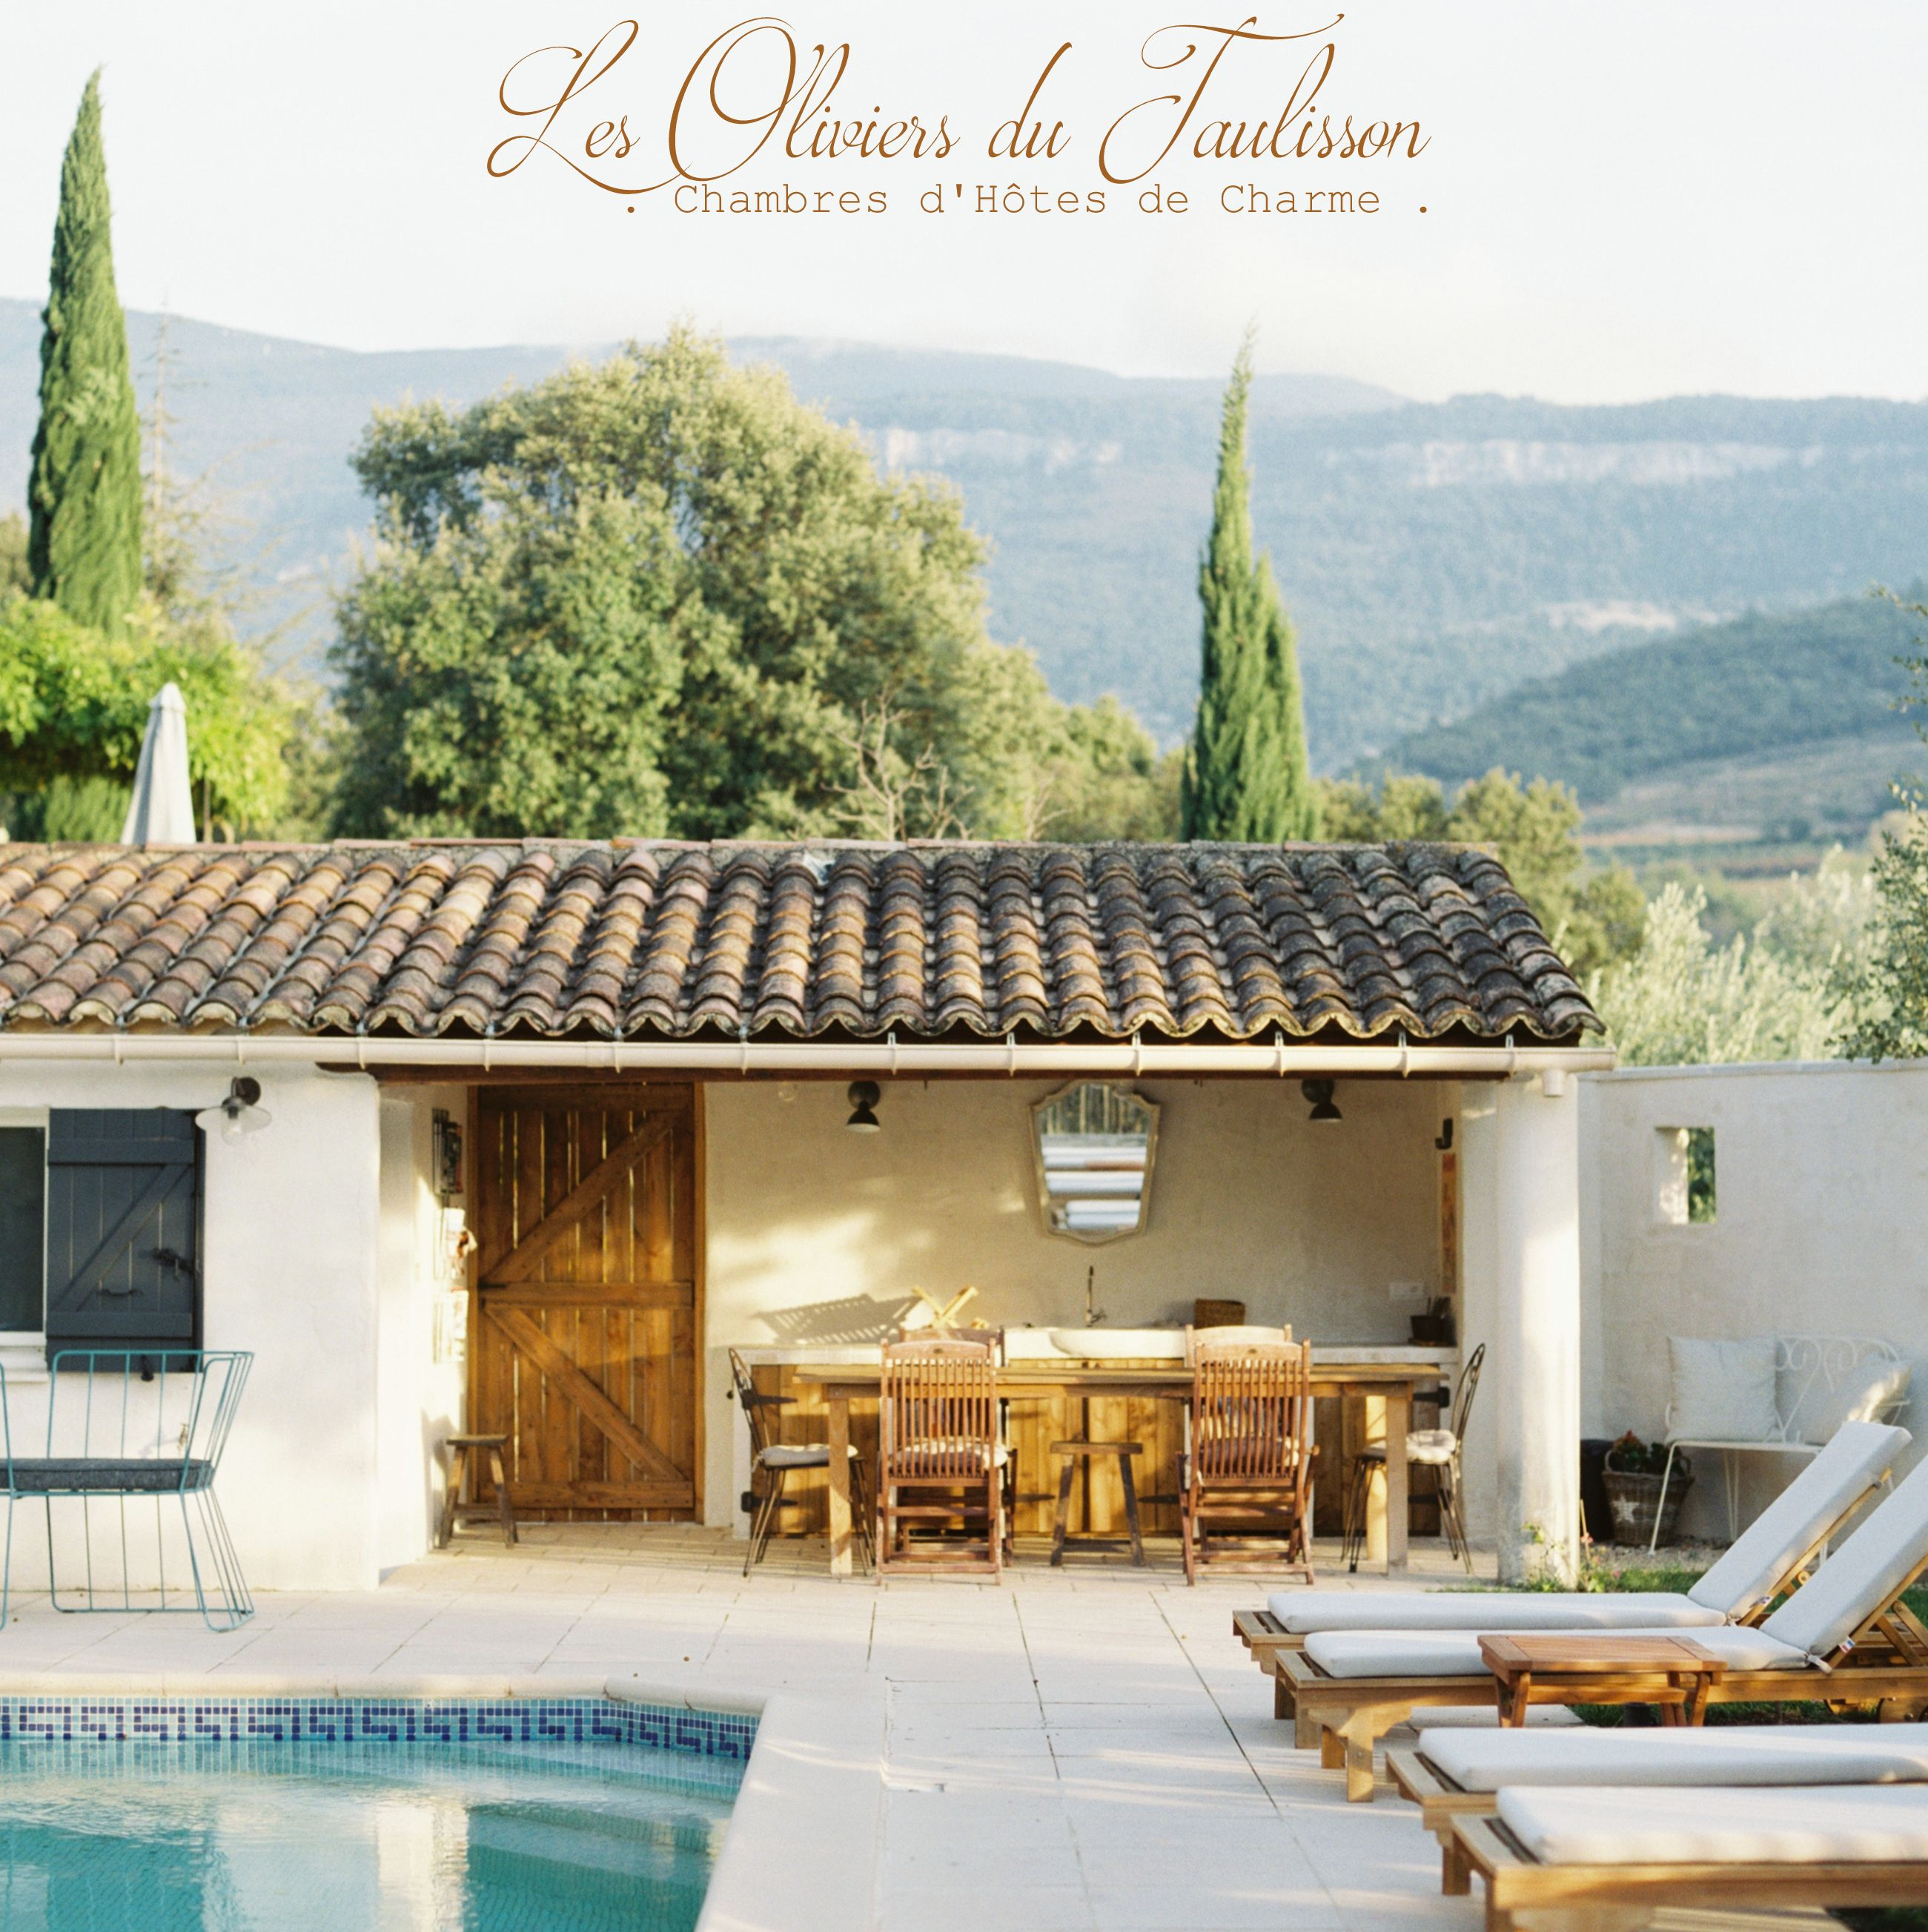 Les Oliviers Du Taulisson Chambres D Hotes De Charme En Provence Mont Ventoux French Countryside Vacation Wishlist Hotels And Resorts